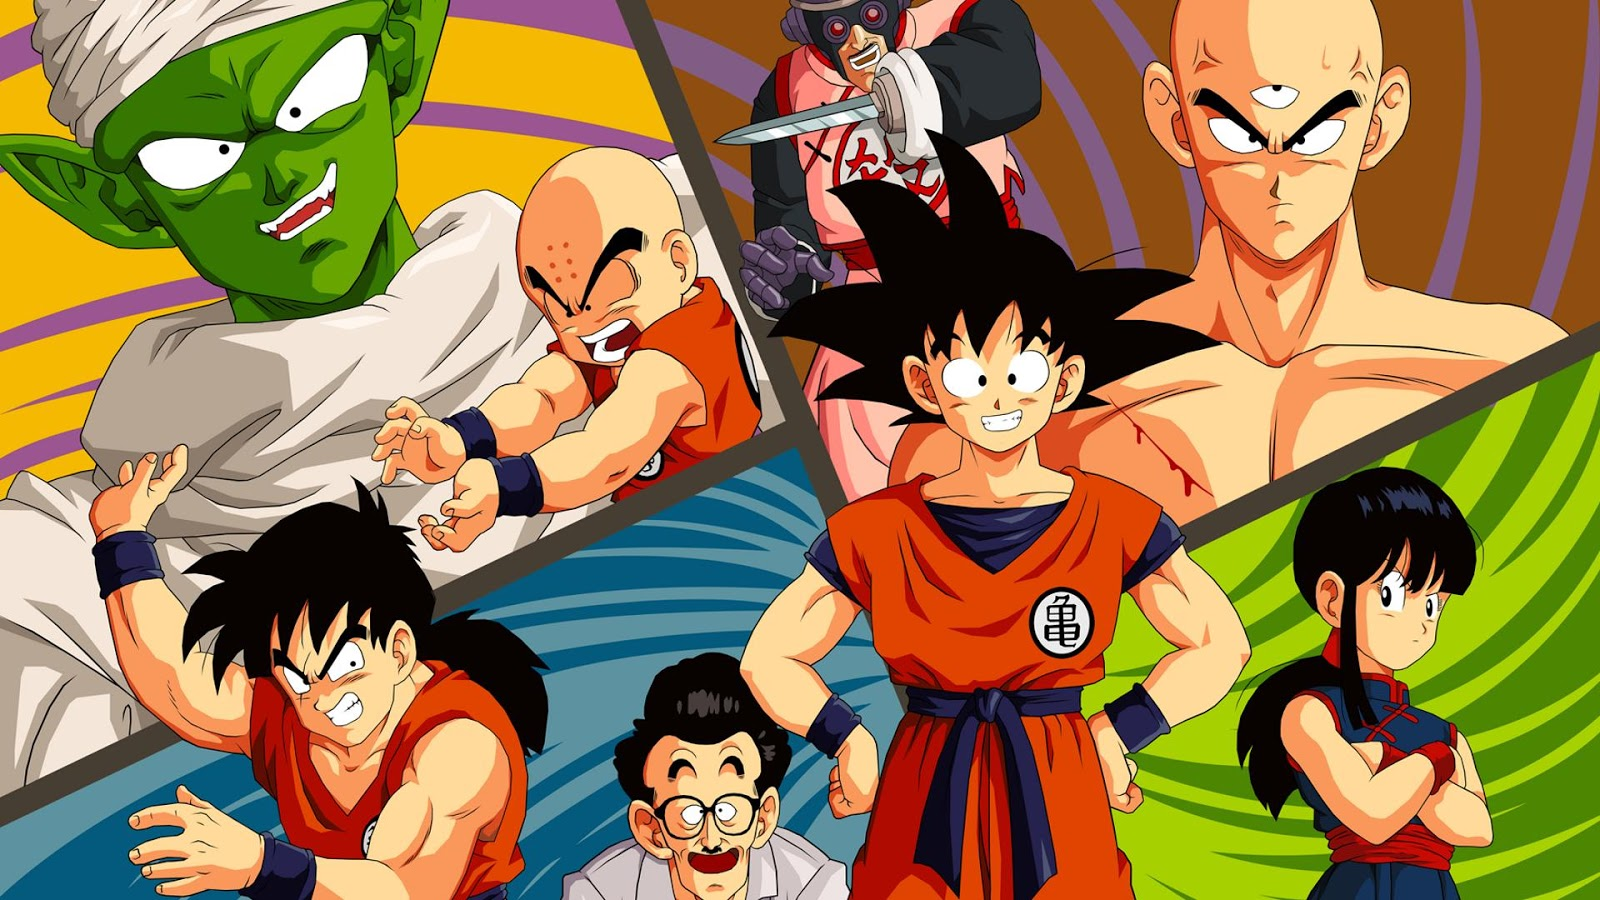 Dragon Ball Z Wallpapers for Phones